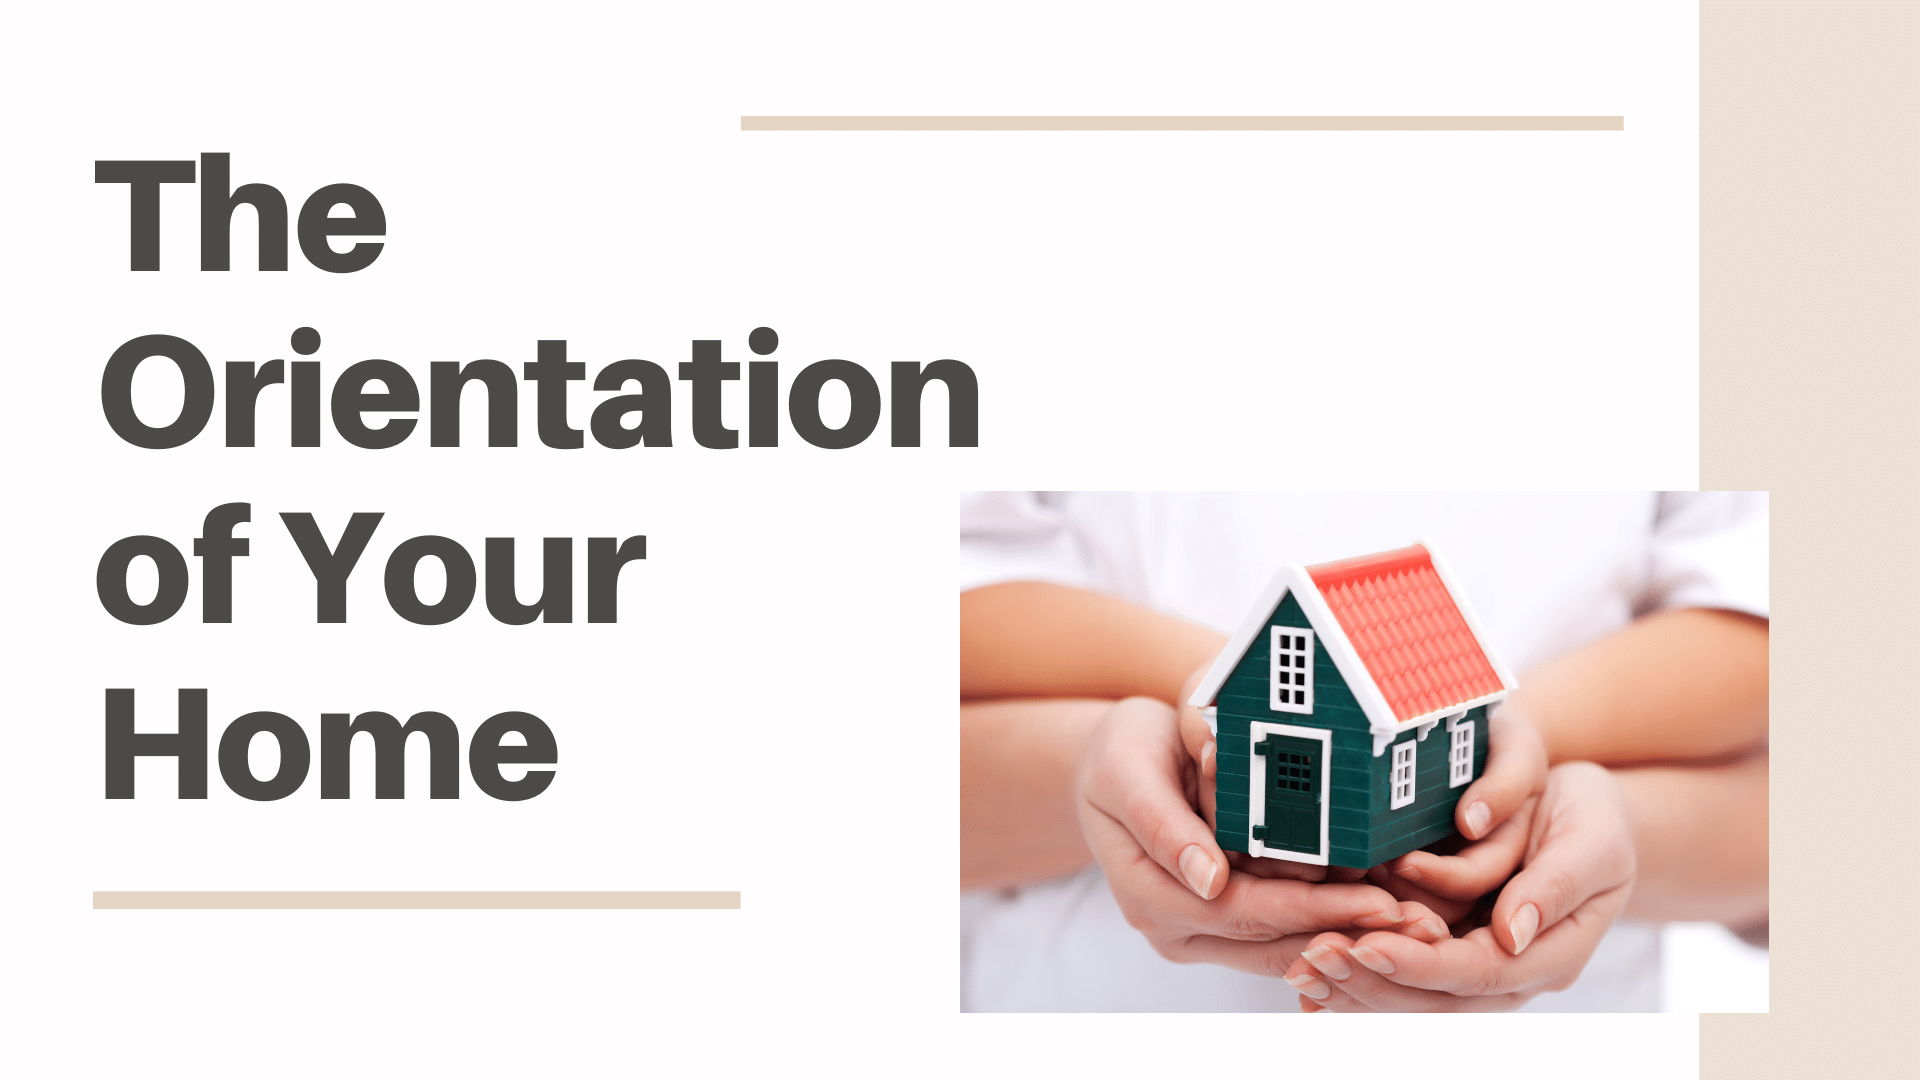 The Orientation of Your Home